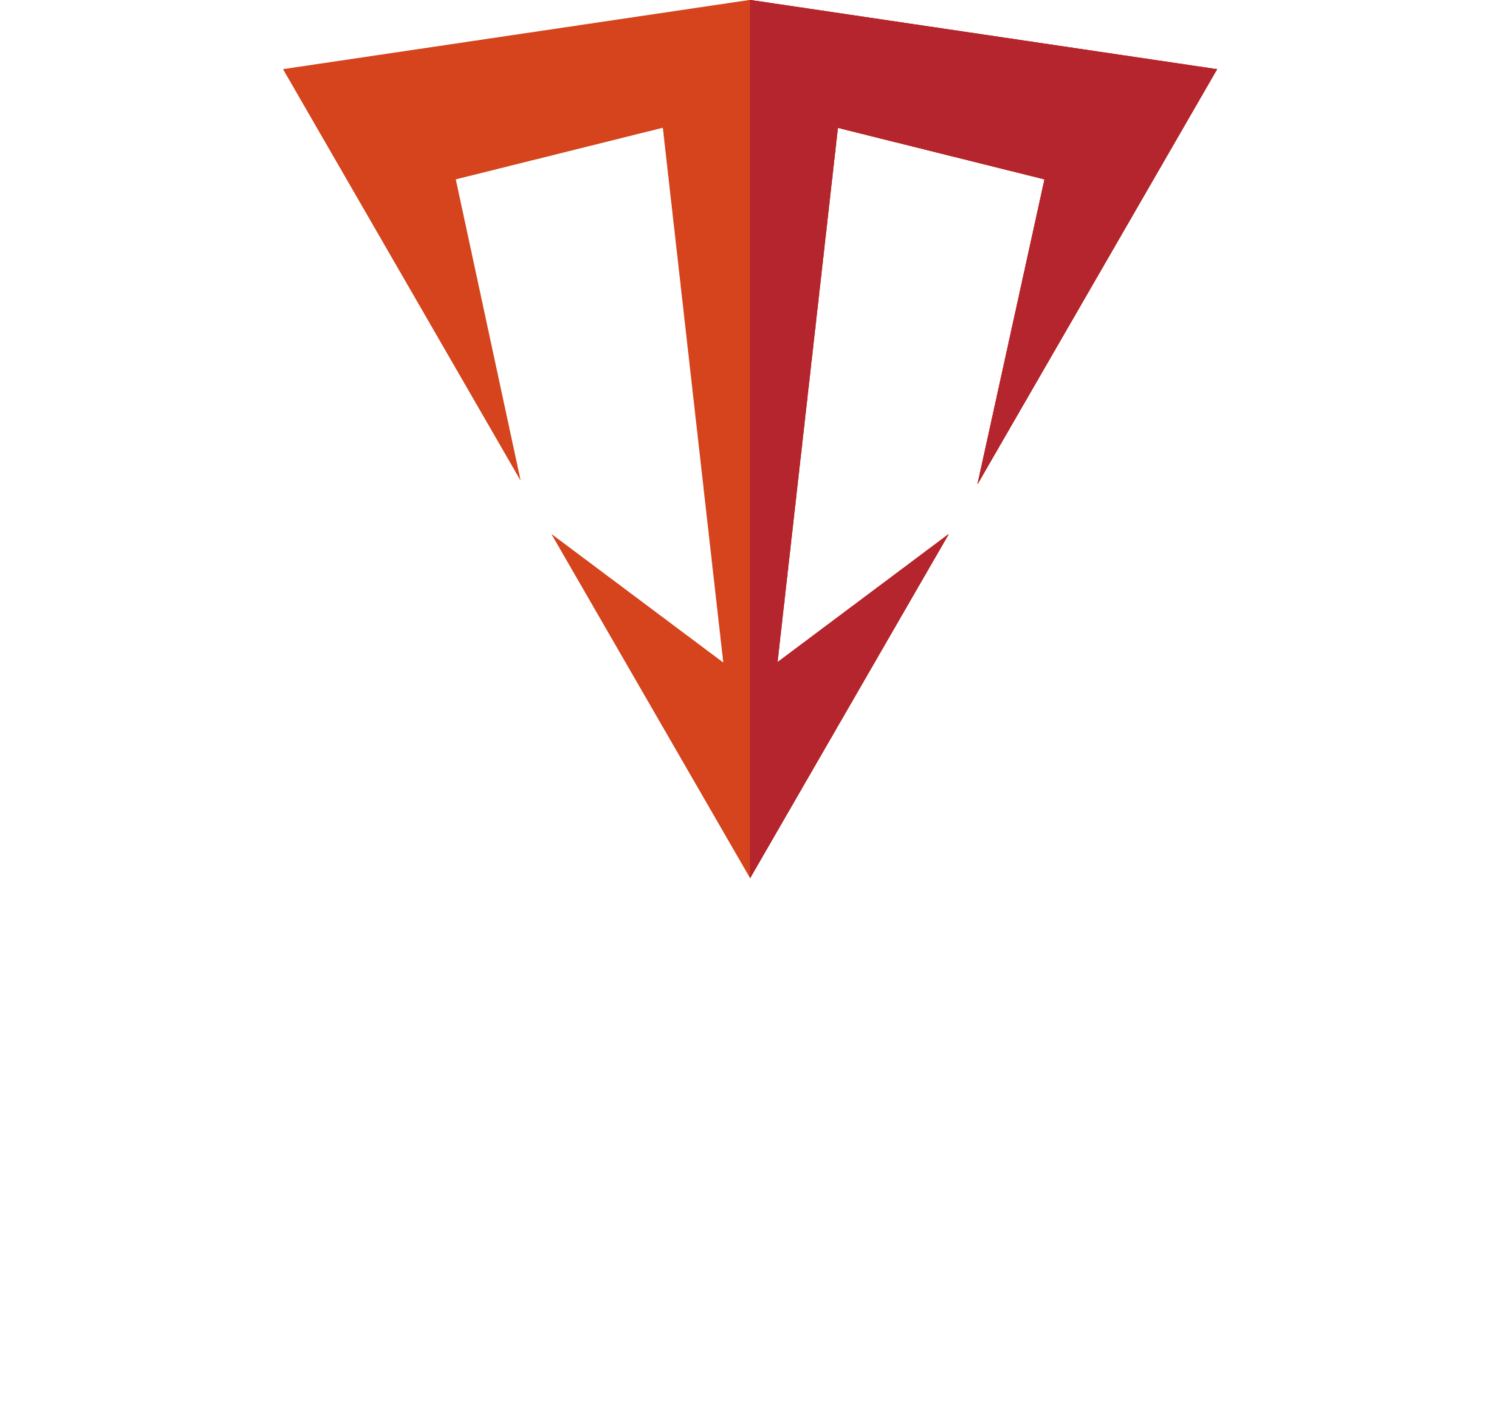 Triton Innovation Inc.